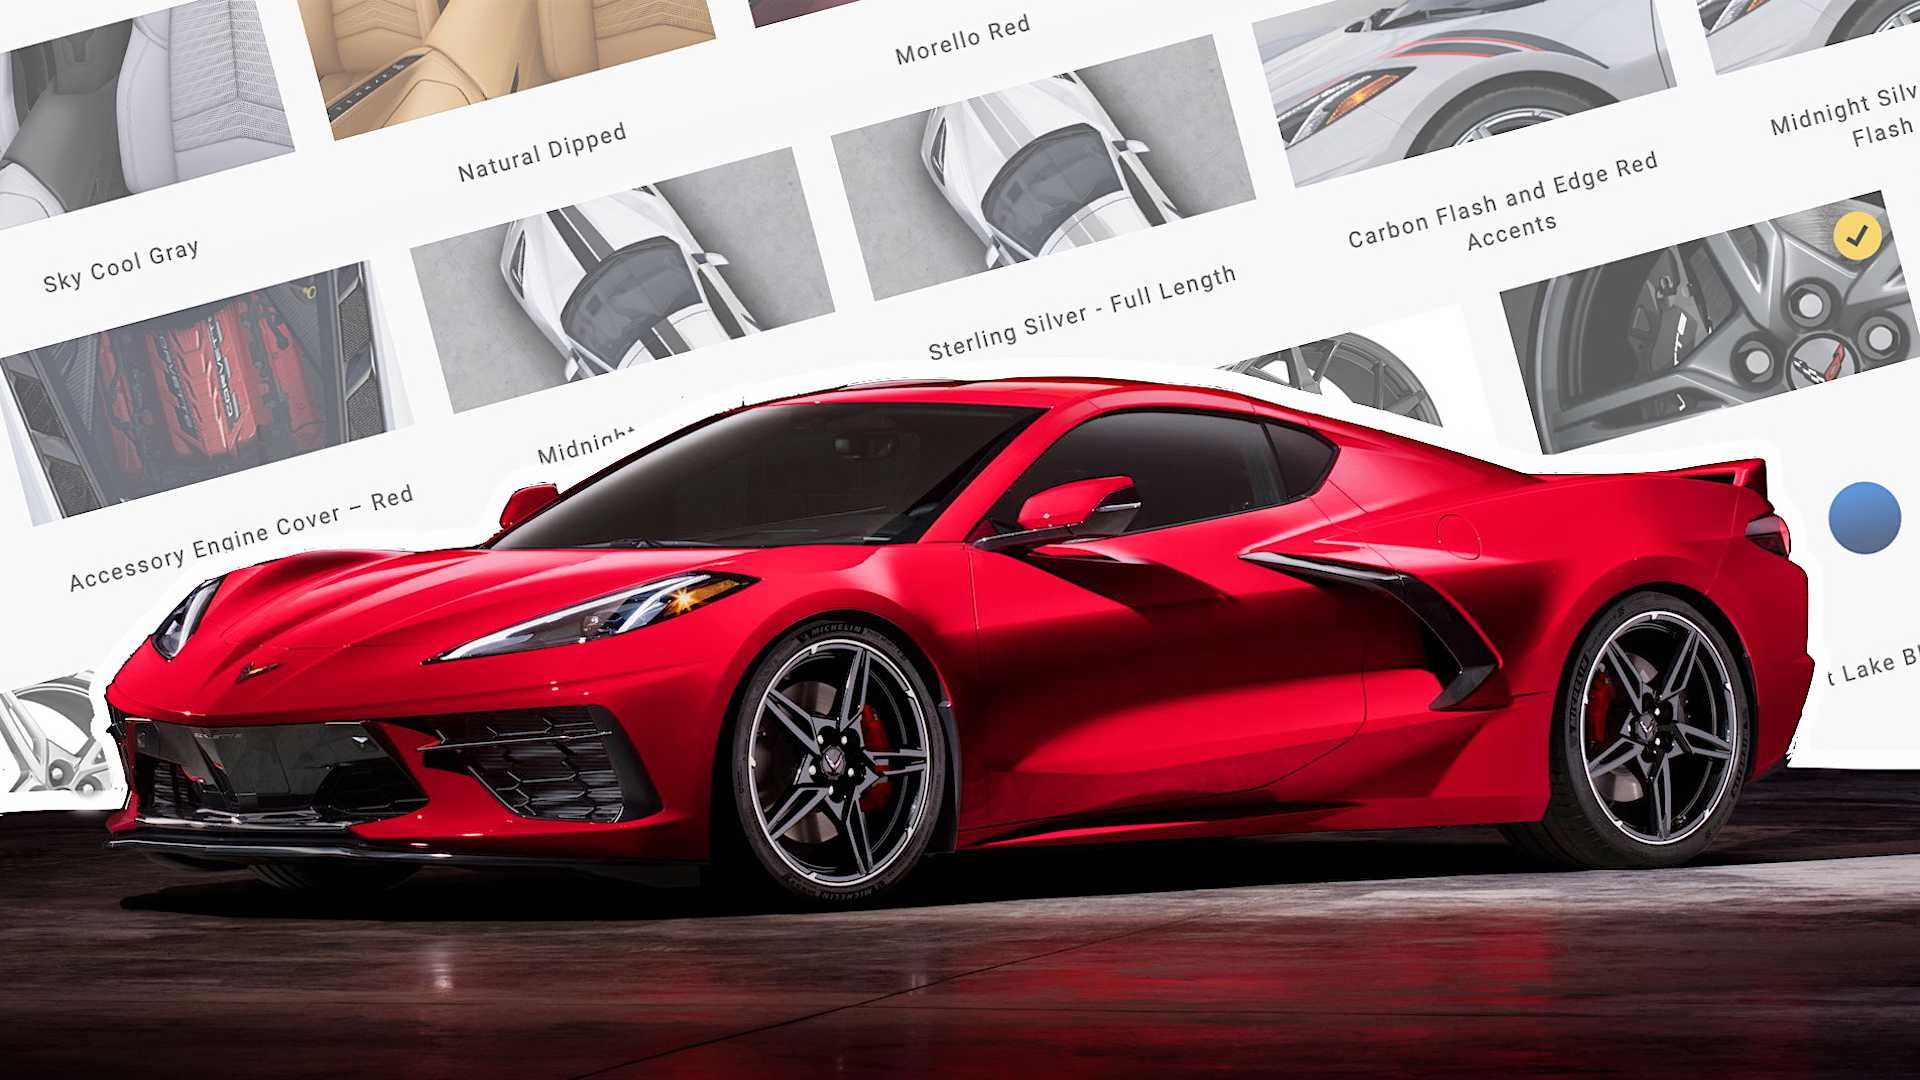 2020 Chevy C8 Corvette Wallpapers - Wallpaper Cave